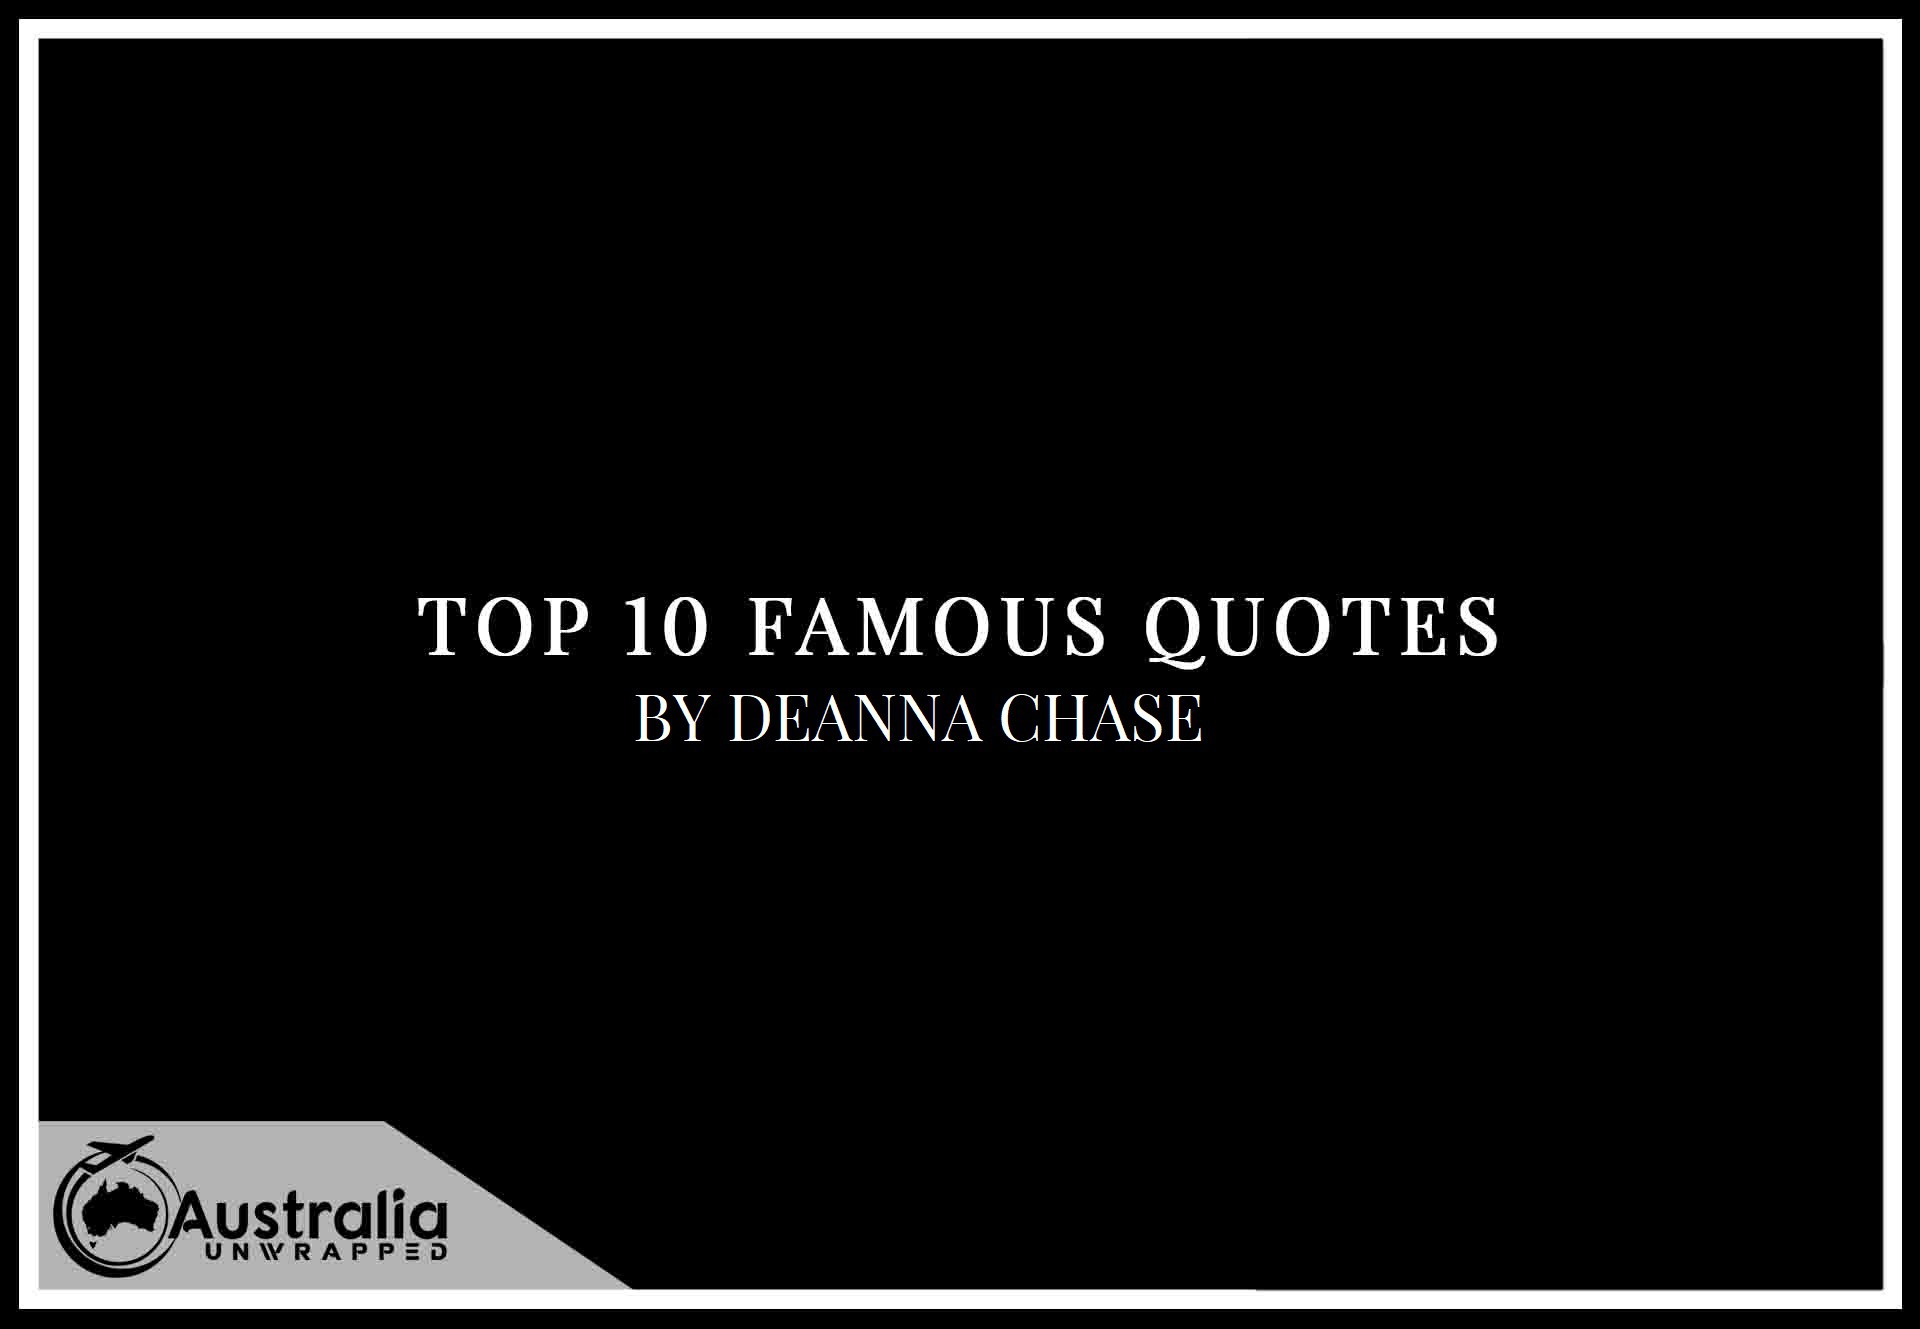 Top 10 Famous Quotes by Author Deanna Chase